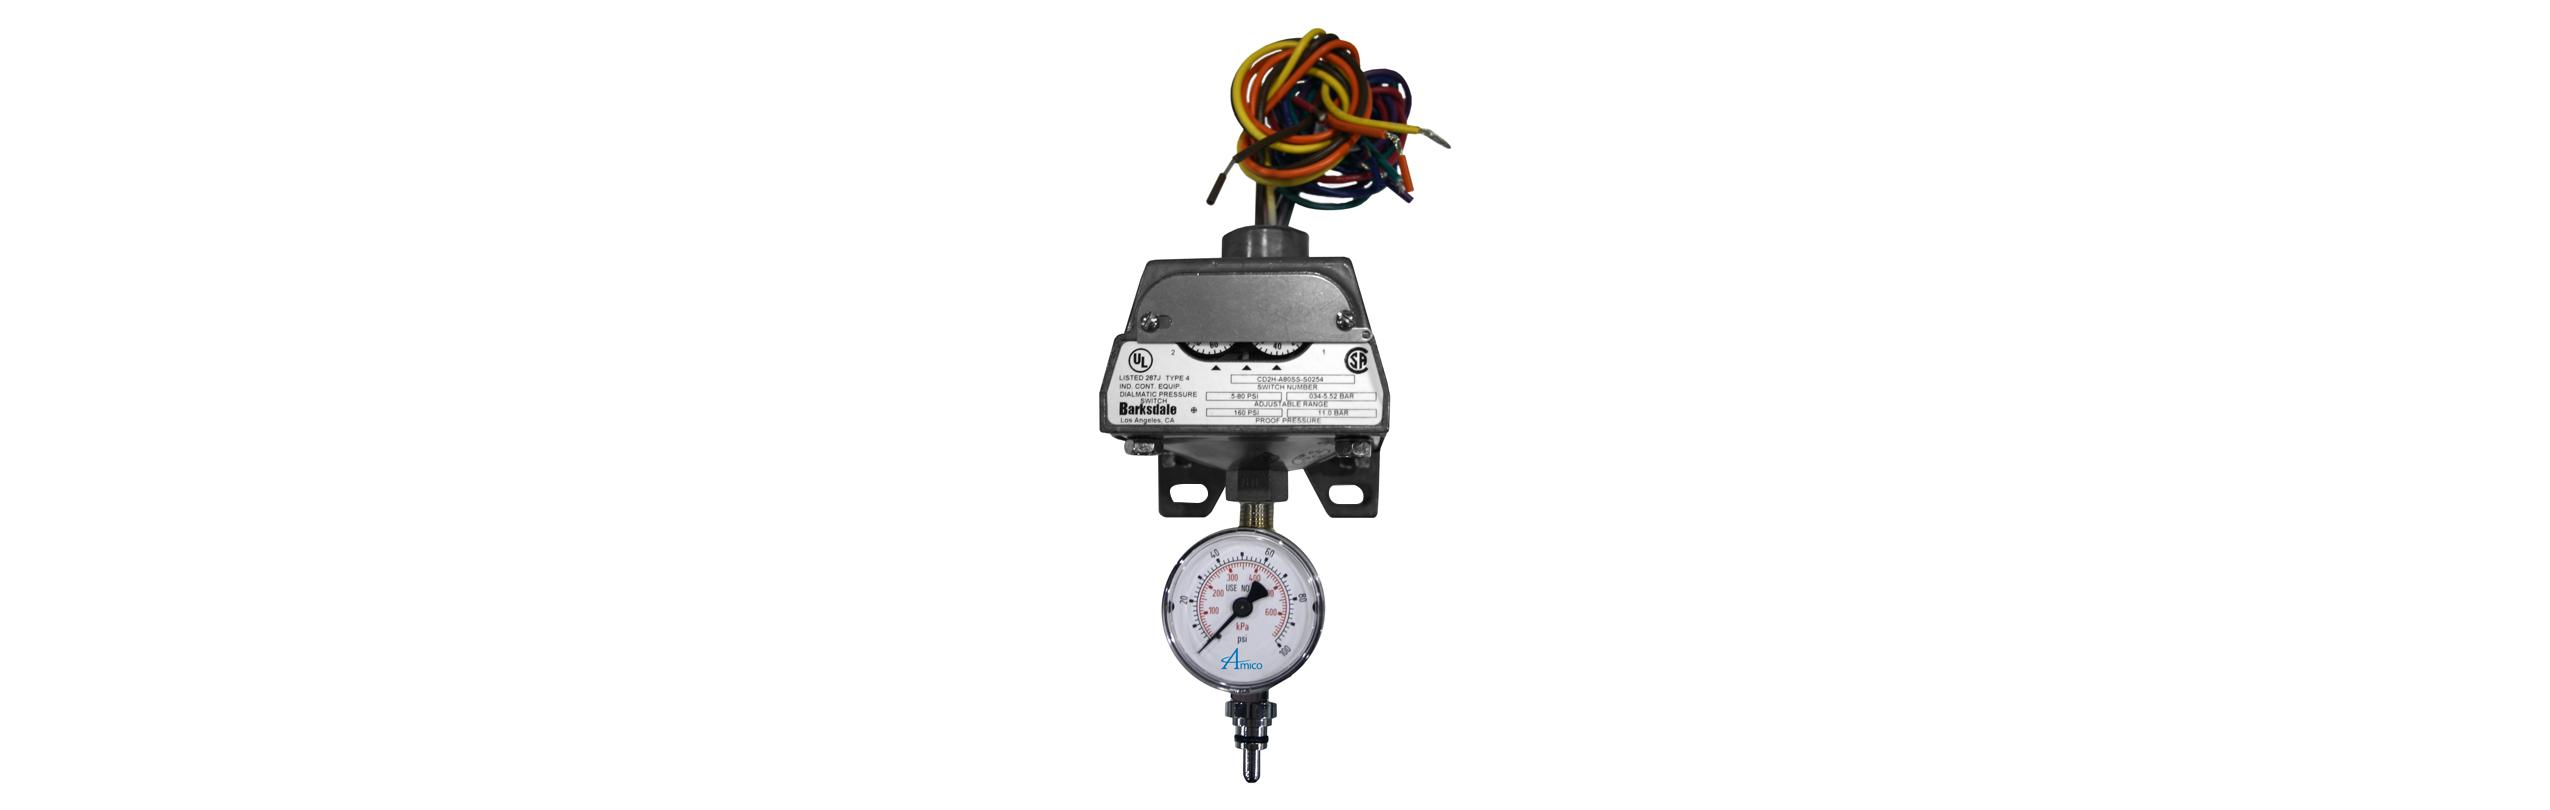 Pressure Switch With Gauge Amico Corporation Barksdale Diaphragm